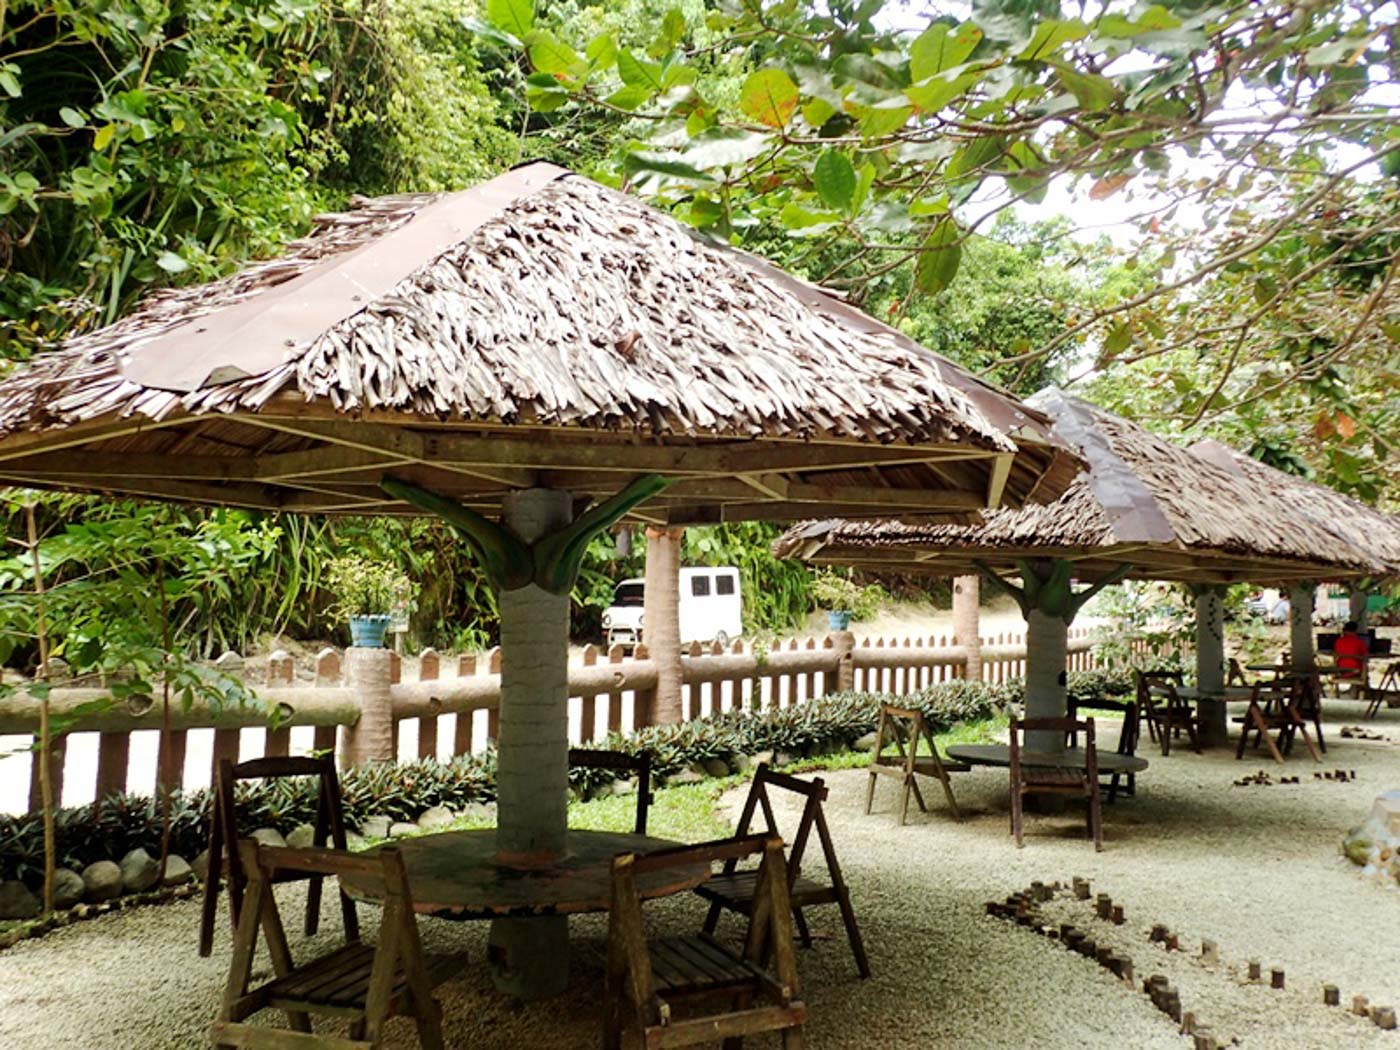 REST AREAS. Cottages are just for waiting and resting. Food is not allowed here. Photo by Claire Madarang/Rappler